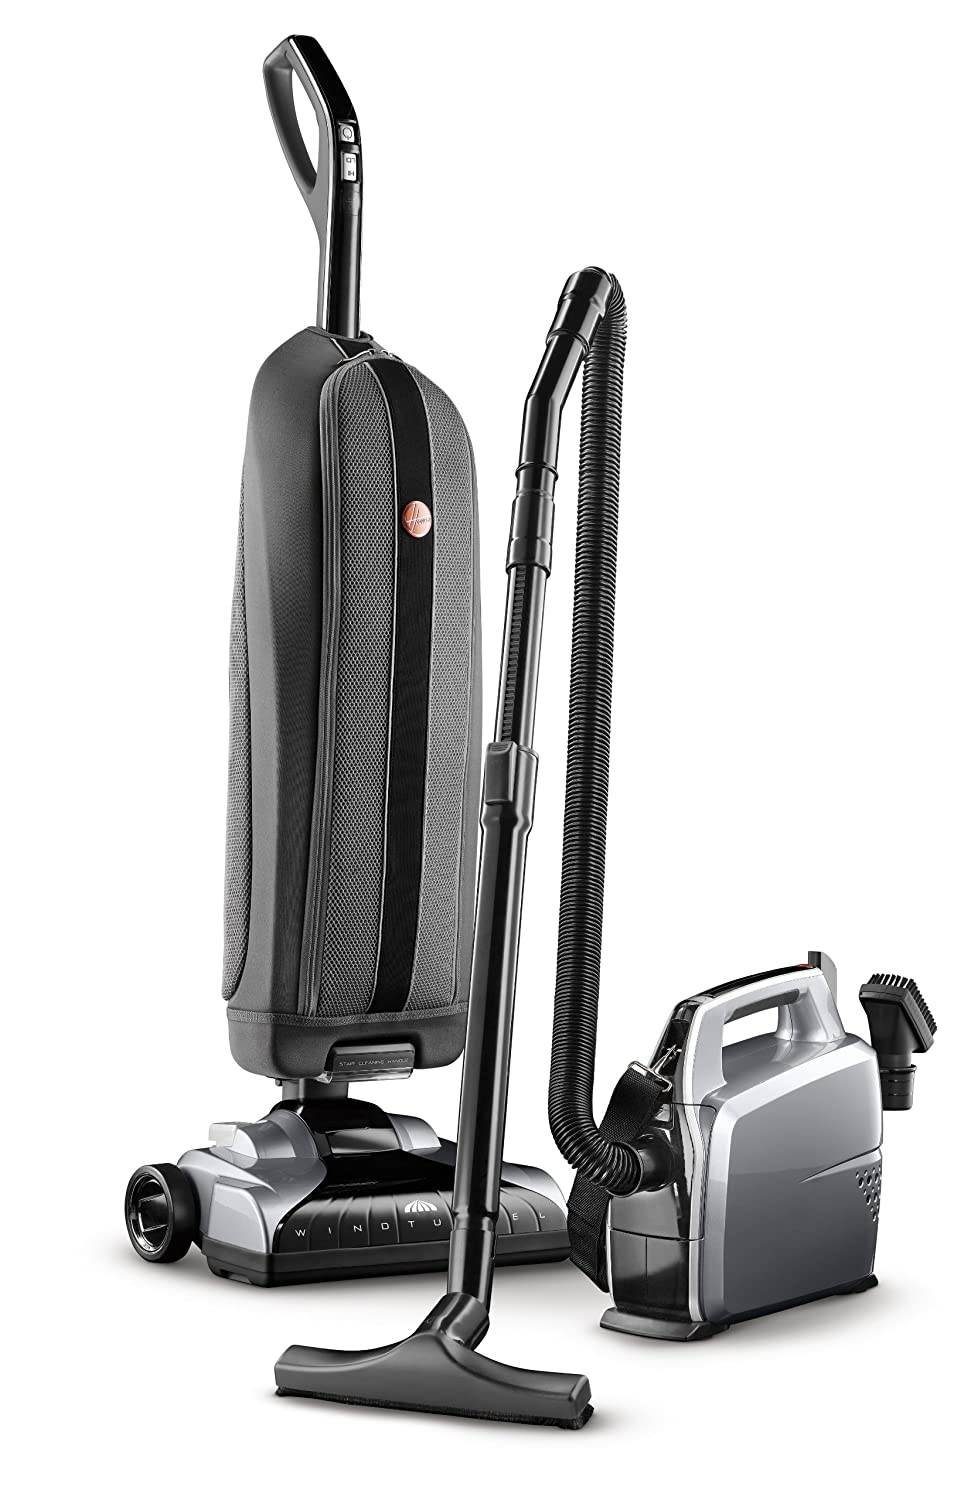 Best vacuum for hardwood and carpet - Hoover Platinum Lightweight Upright Vacuum With Canister Bagged